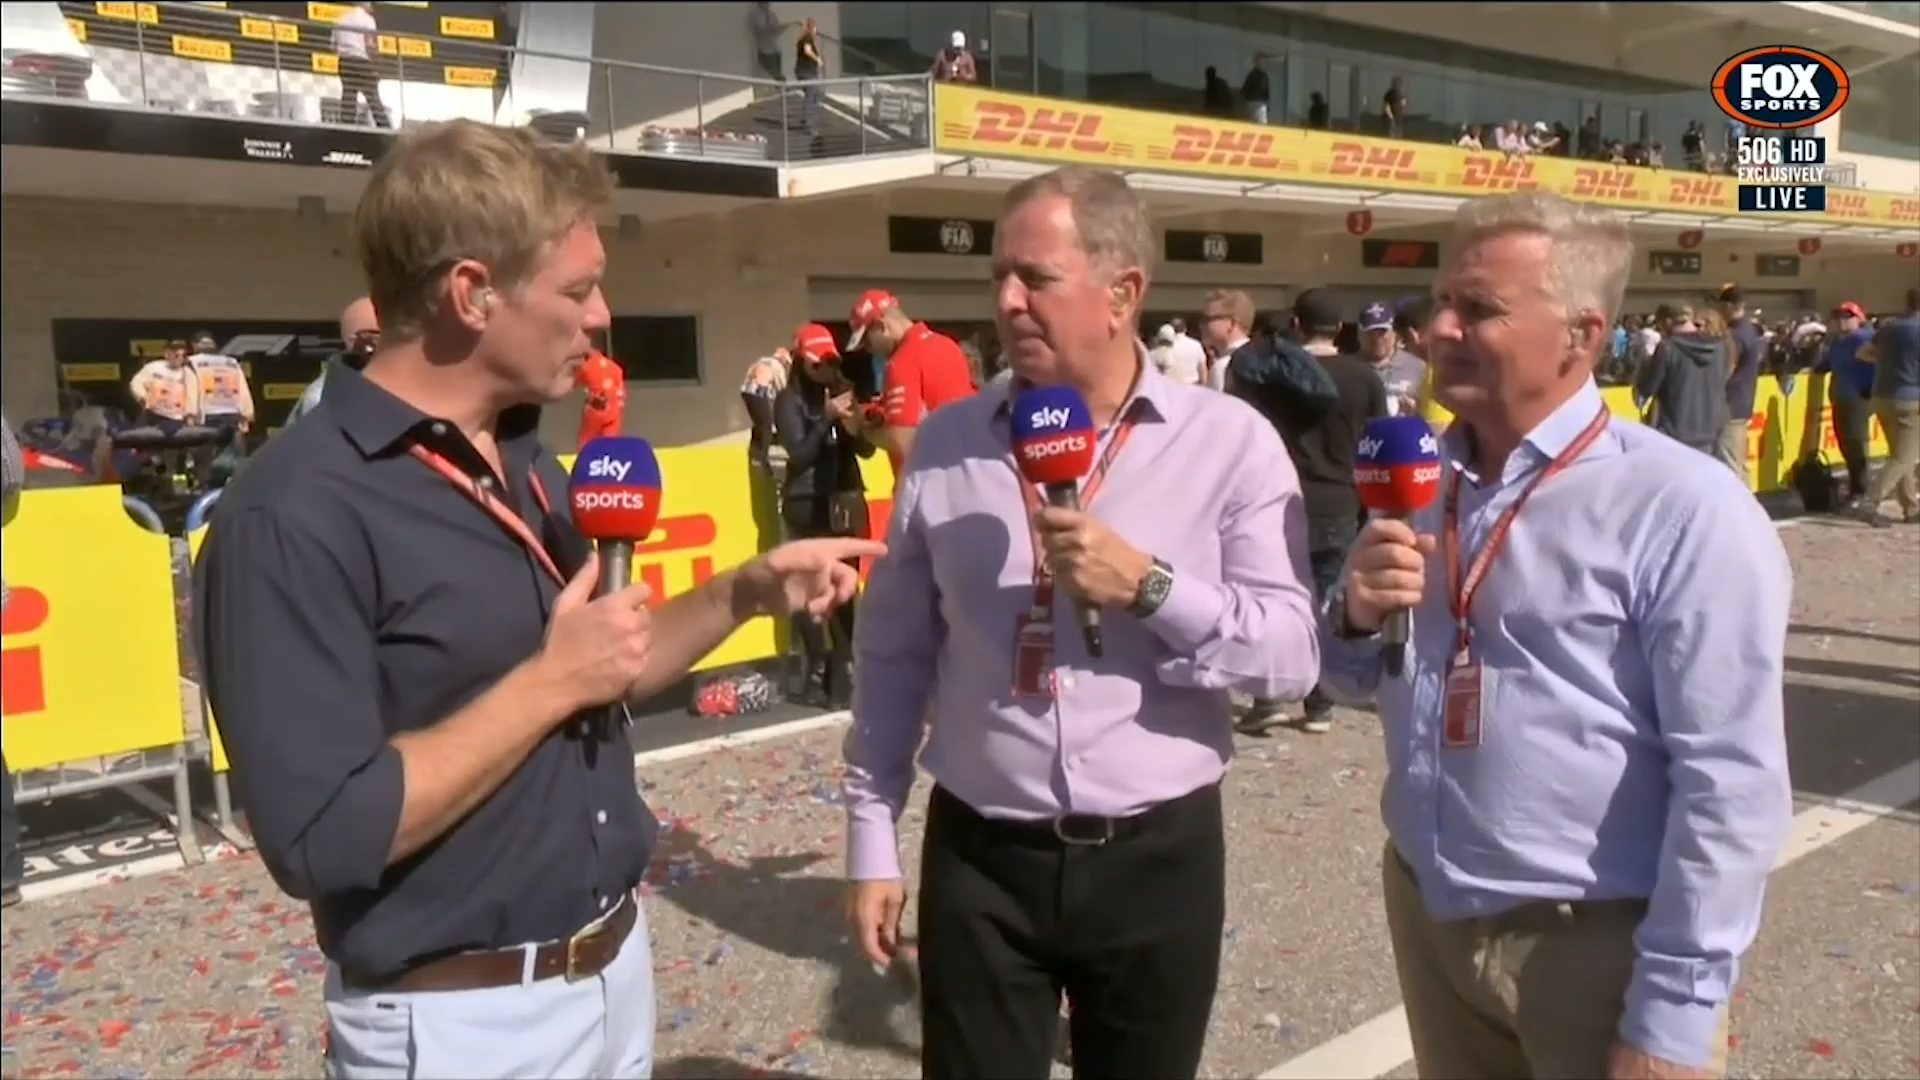 Brundle's damning criticism of Vettel